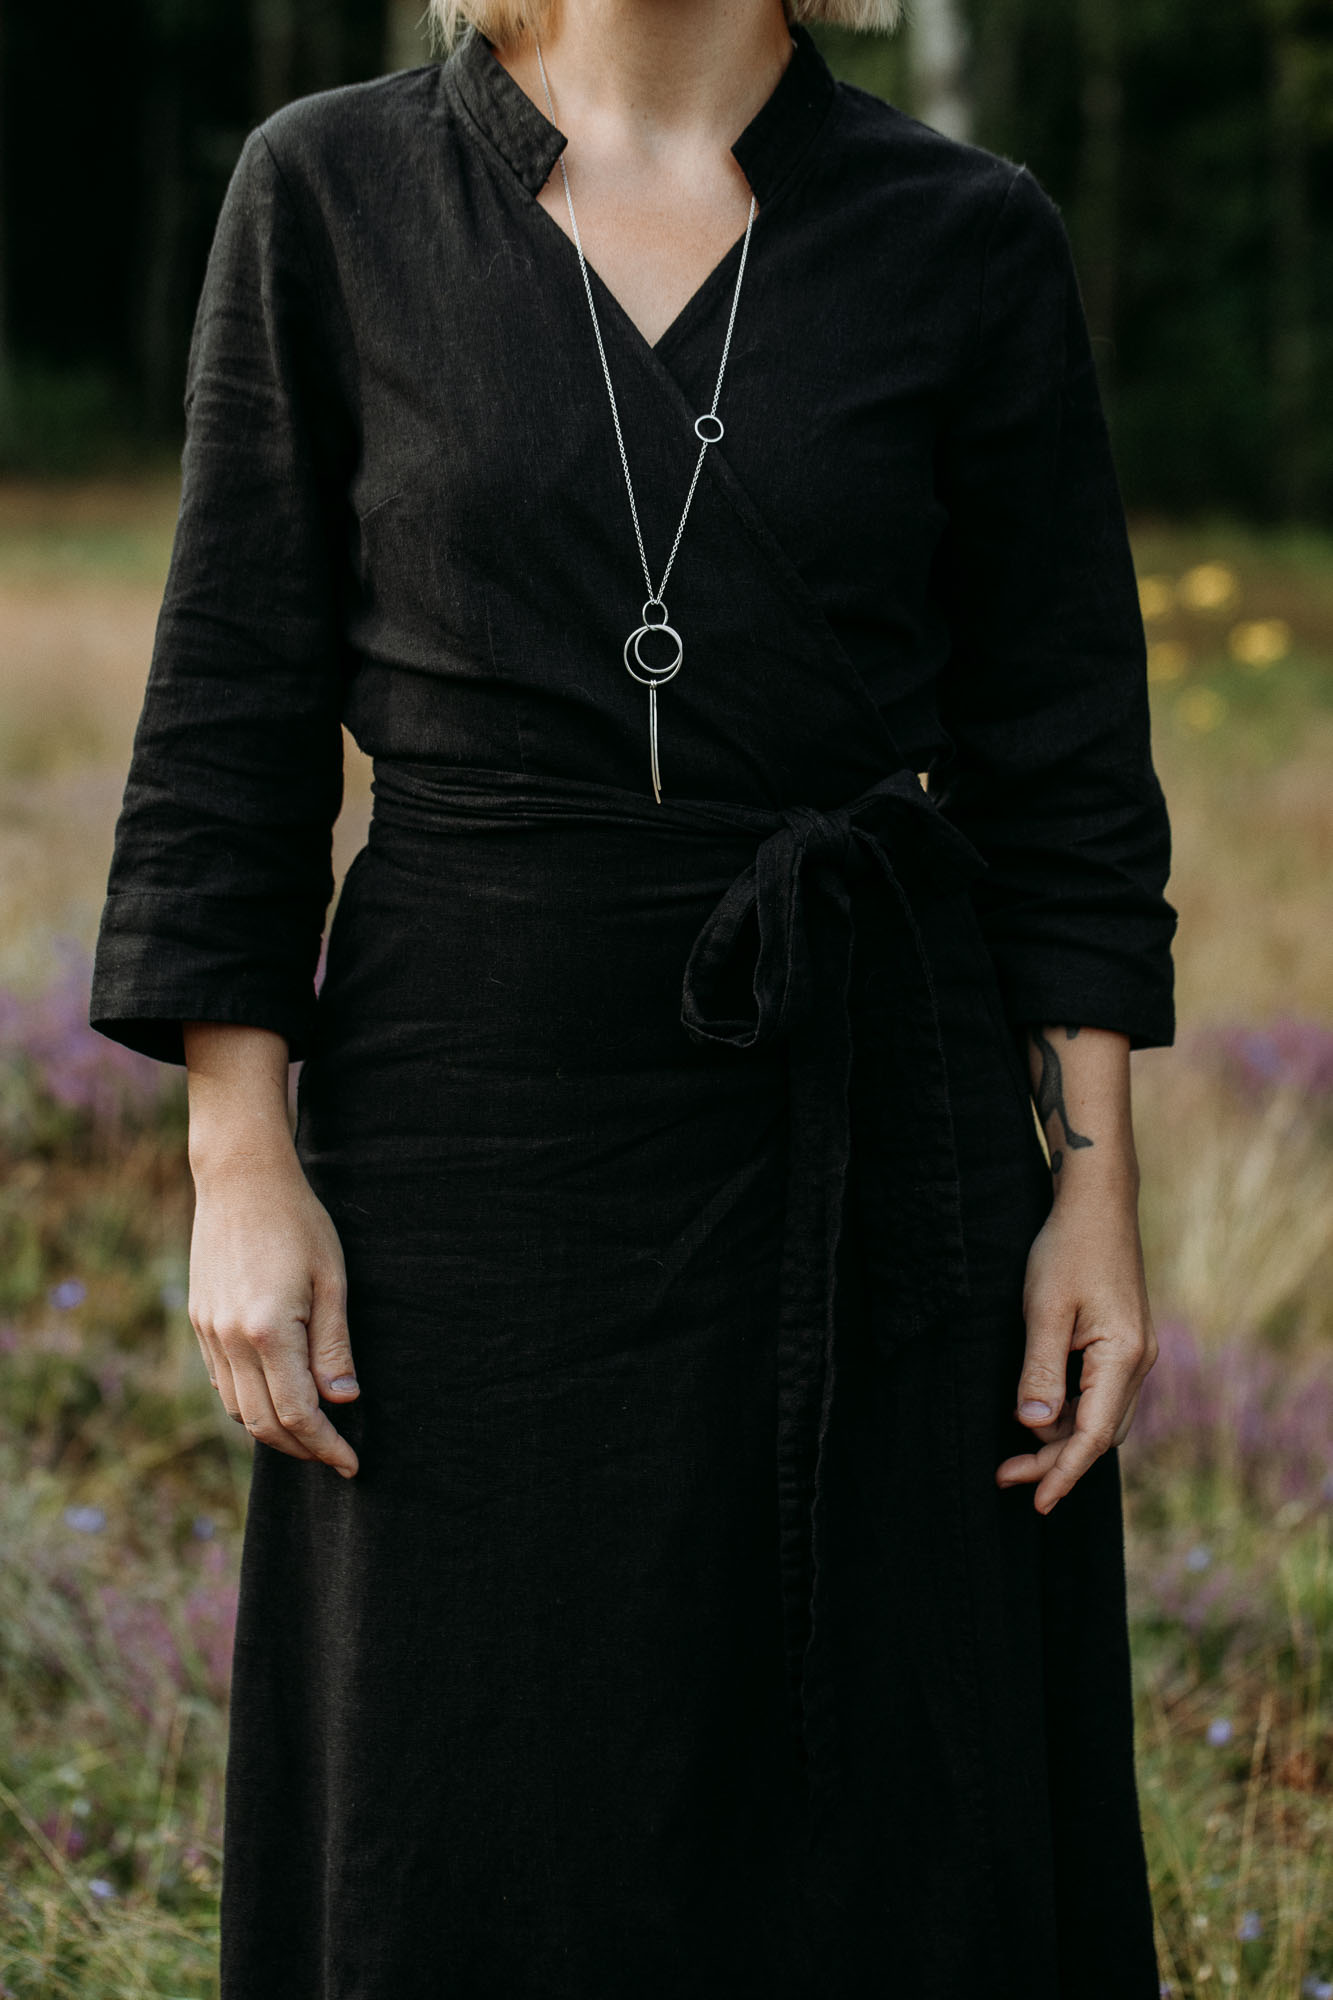 Sylvestris on Stitch 80 cm.  Photo ID: A woman in a black dress in a heather field is wearing a long silver chain from which a pendant with circles and needles hang.